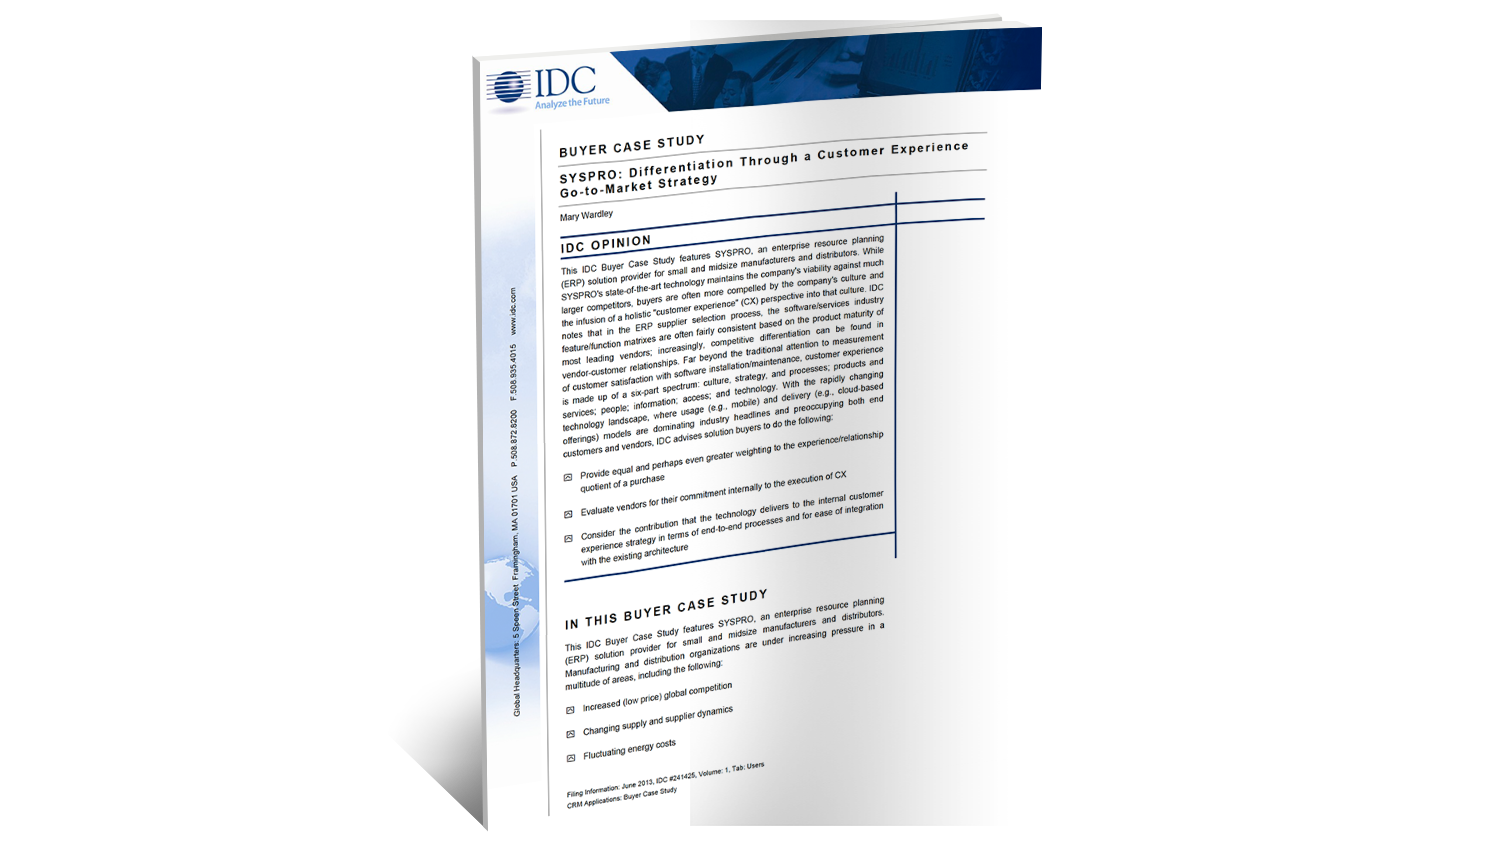 SYSPRO Case Study Customer Experience Analyst Report